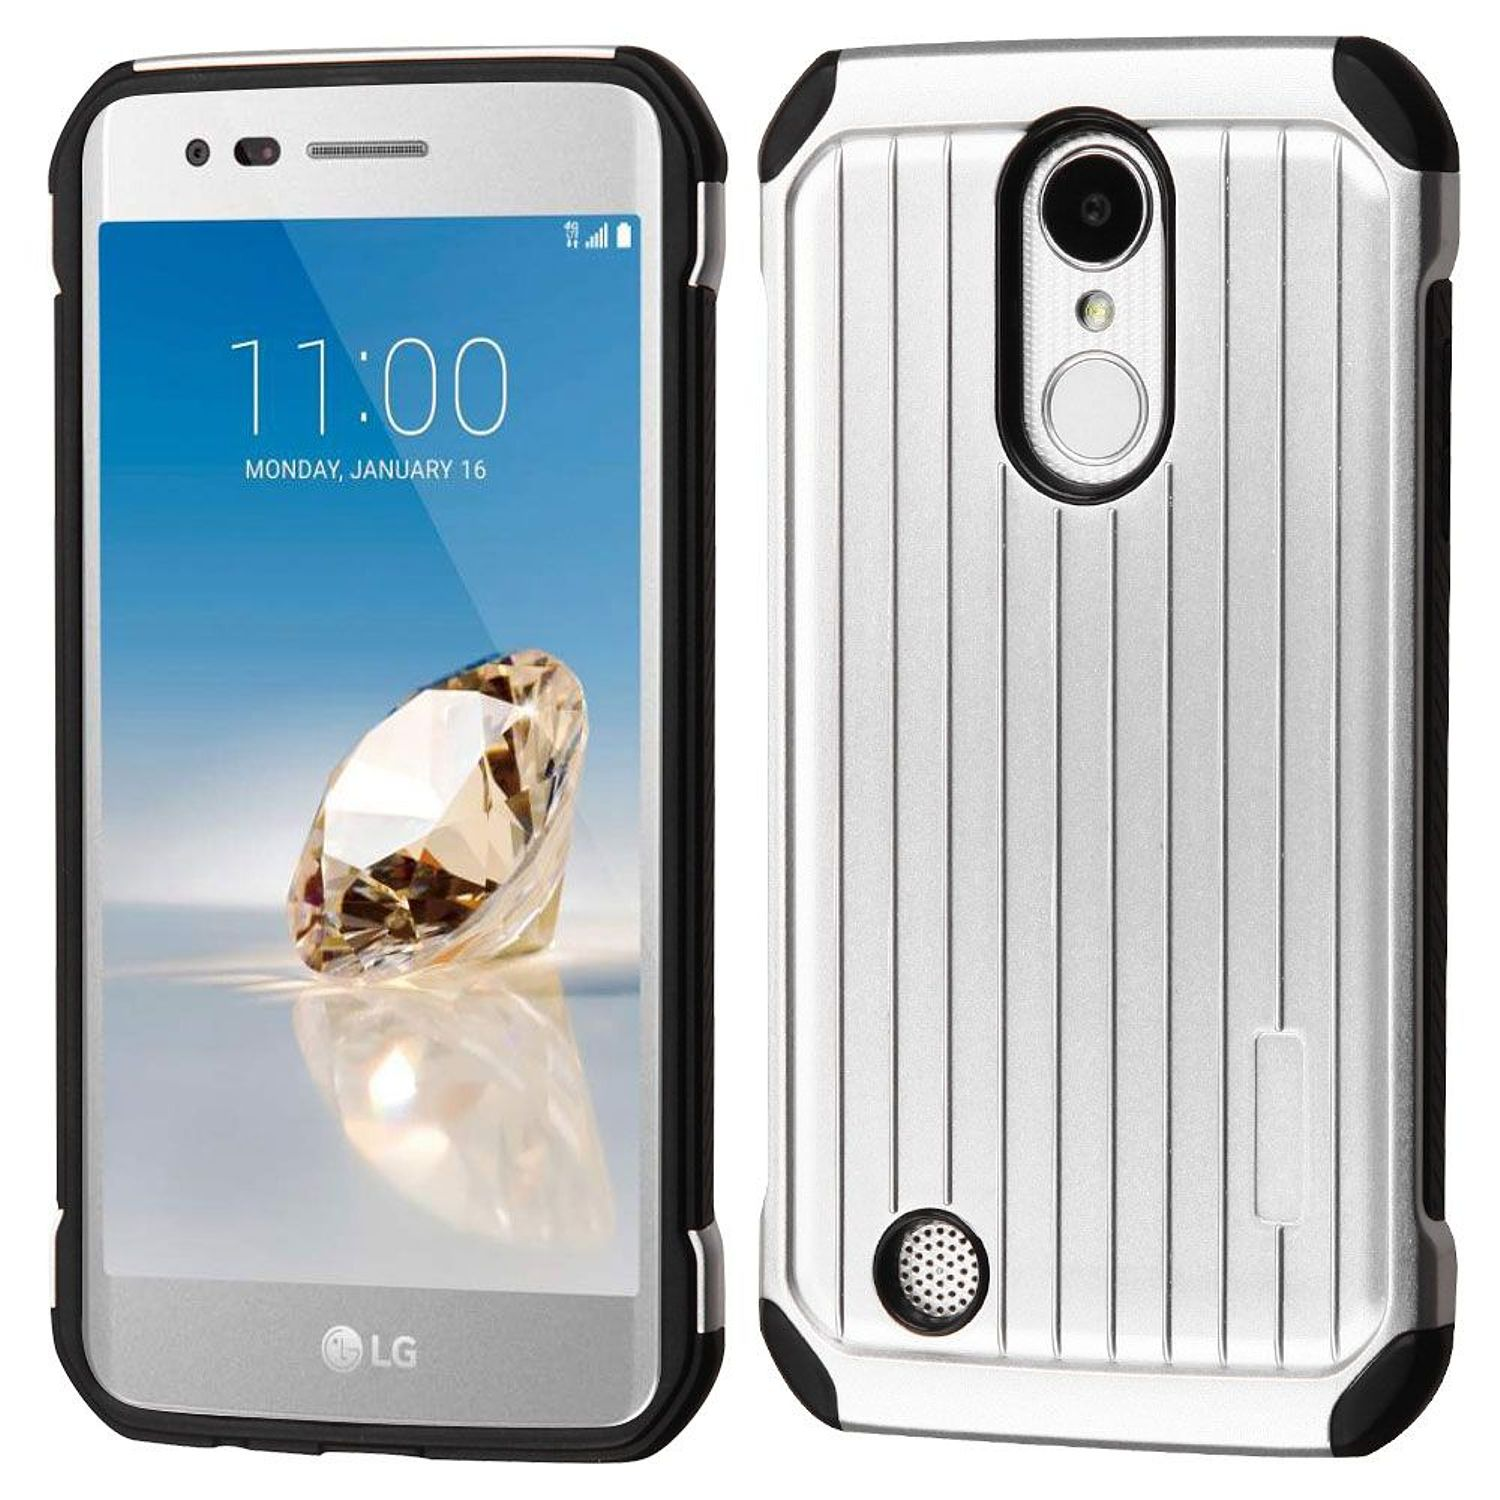 LG Phoenix 3 phone case LG Aristo case LG K8 2017 case by Insten Suitcase Dual Layer Hybrid Hard Plastic/Soft TPU Rubber Case Cover For LG Aristo/Fortune/K8 (2017)/LV3/Phoenix 3, Silver/Black